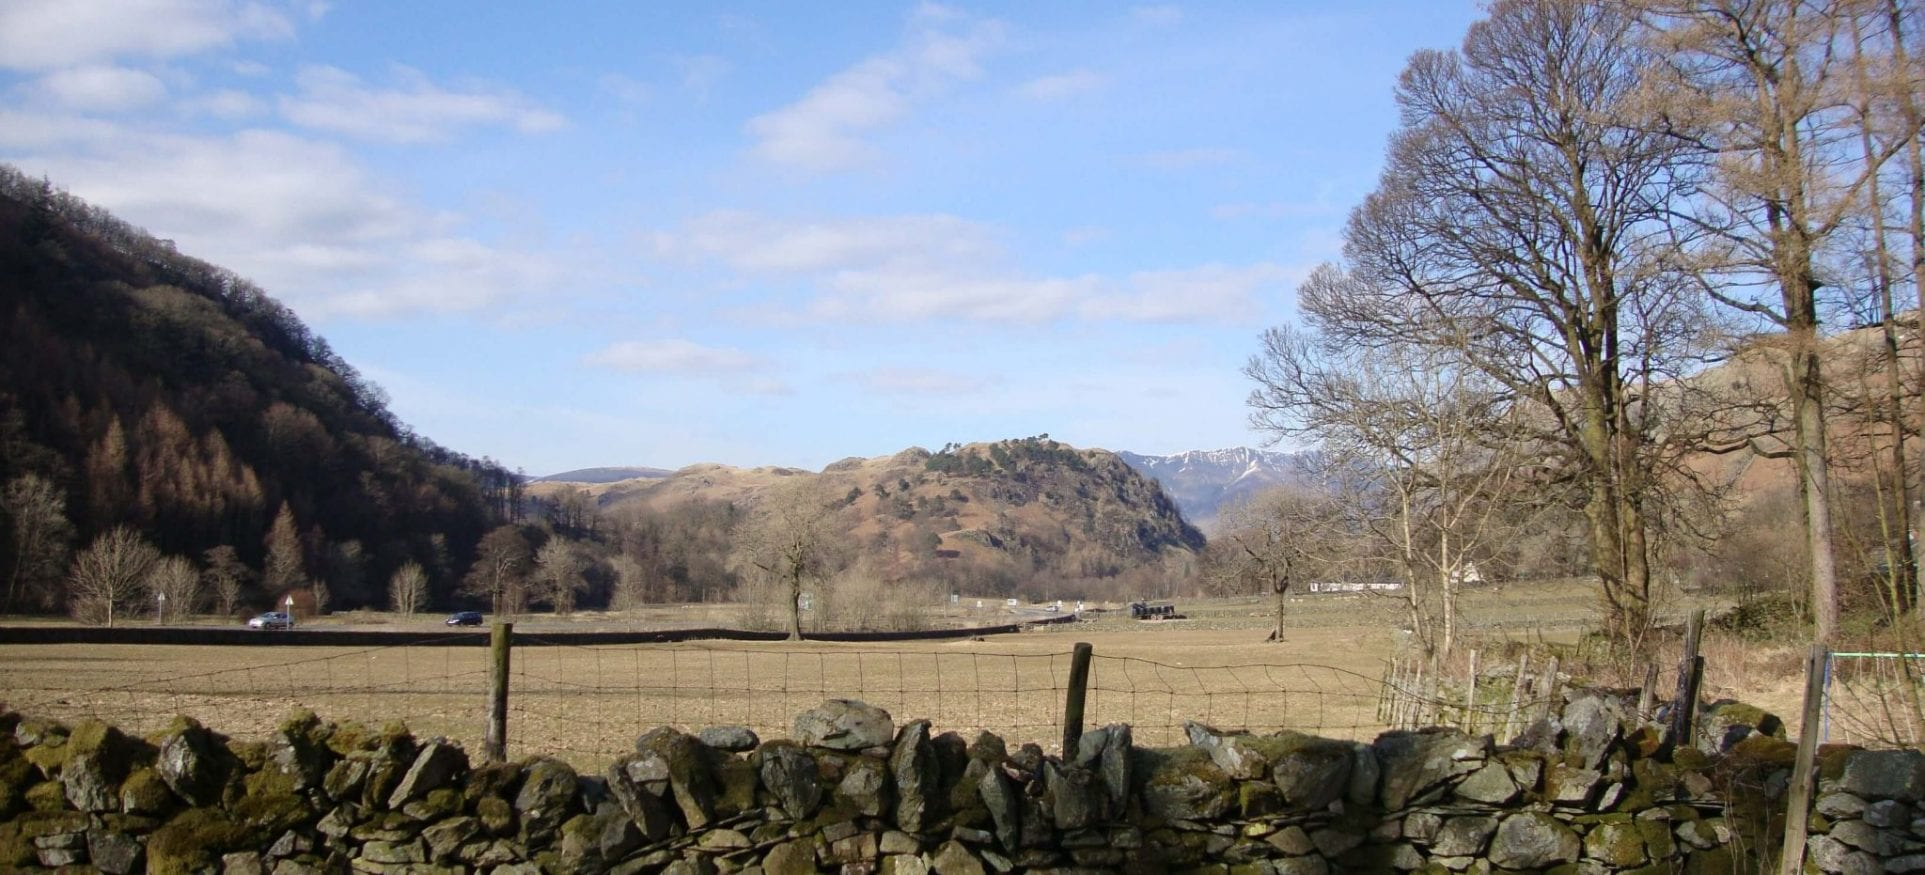 Fisher-gill Camping Barn - independent hostel - self catering cottages - helvellyn range